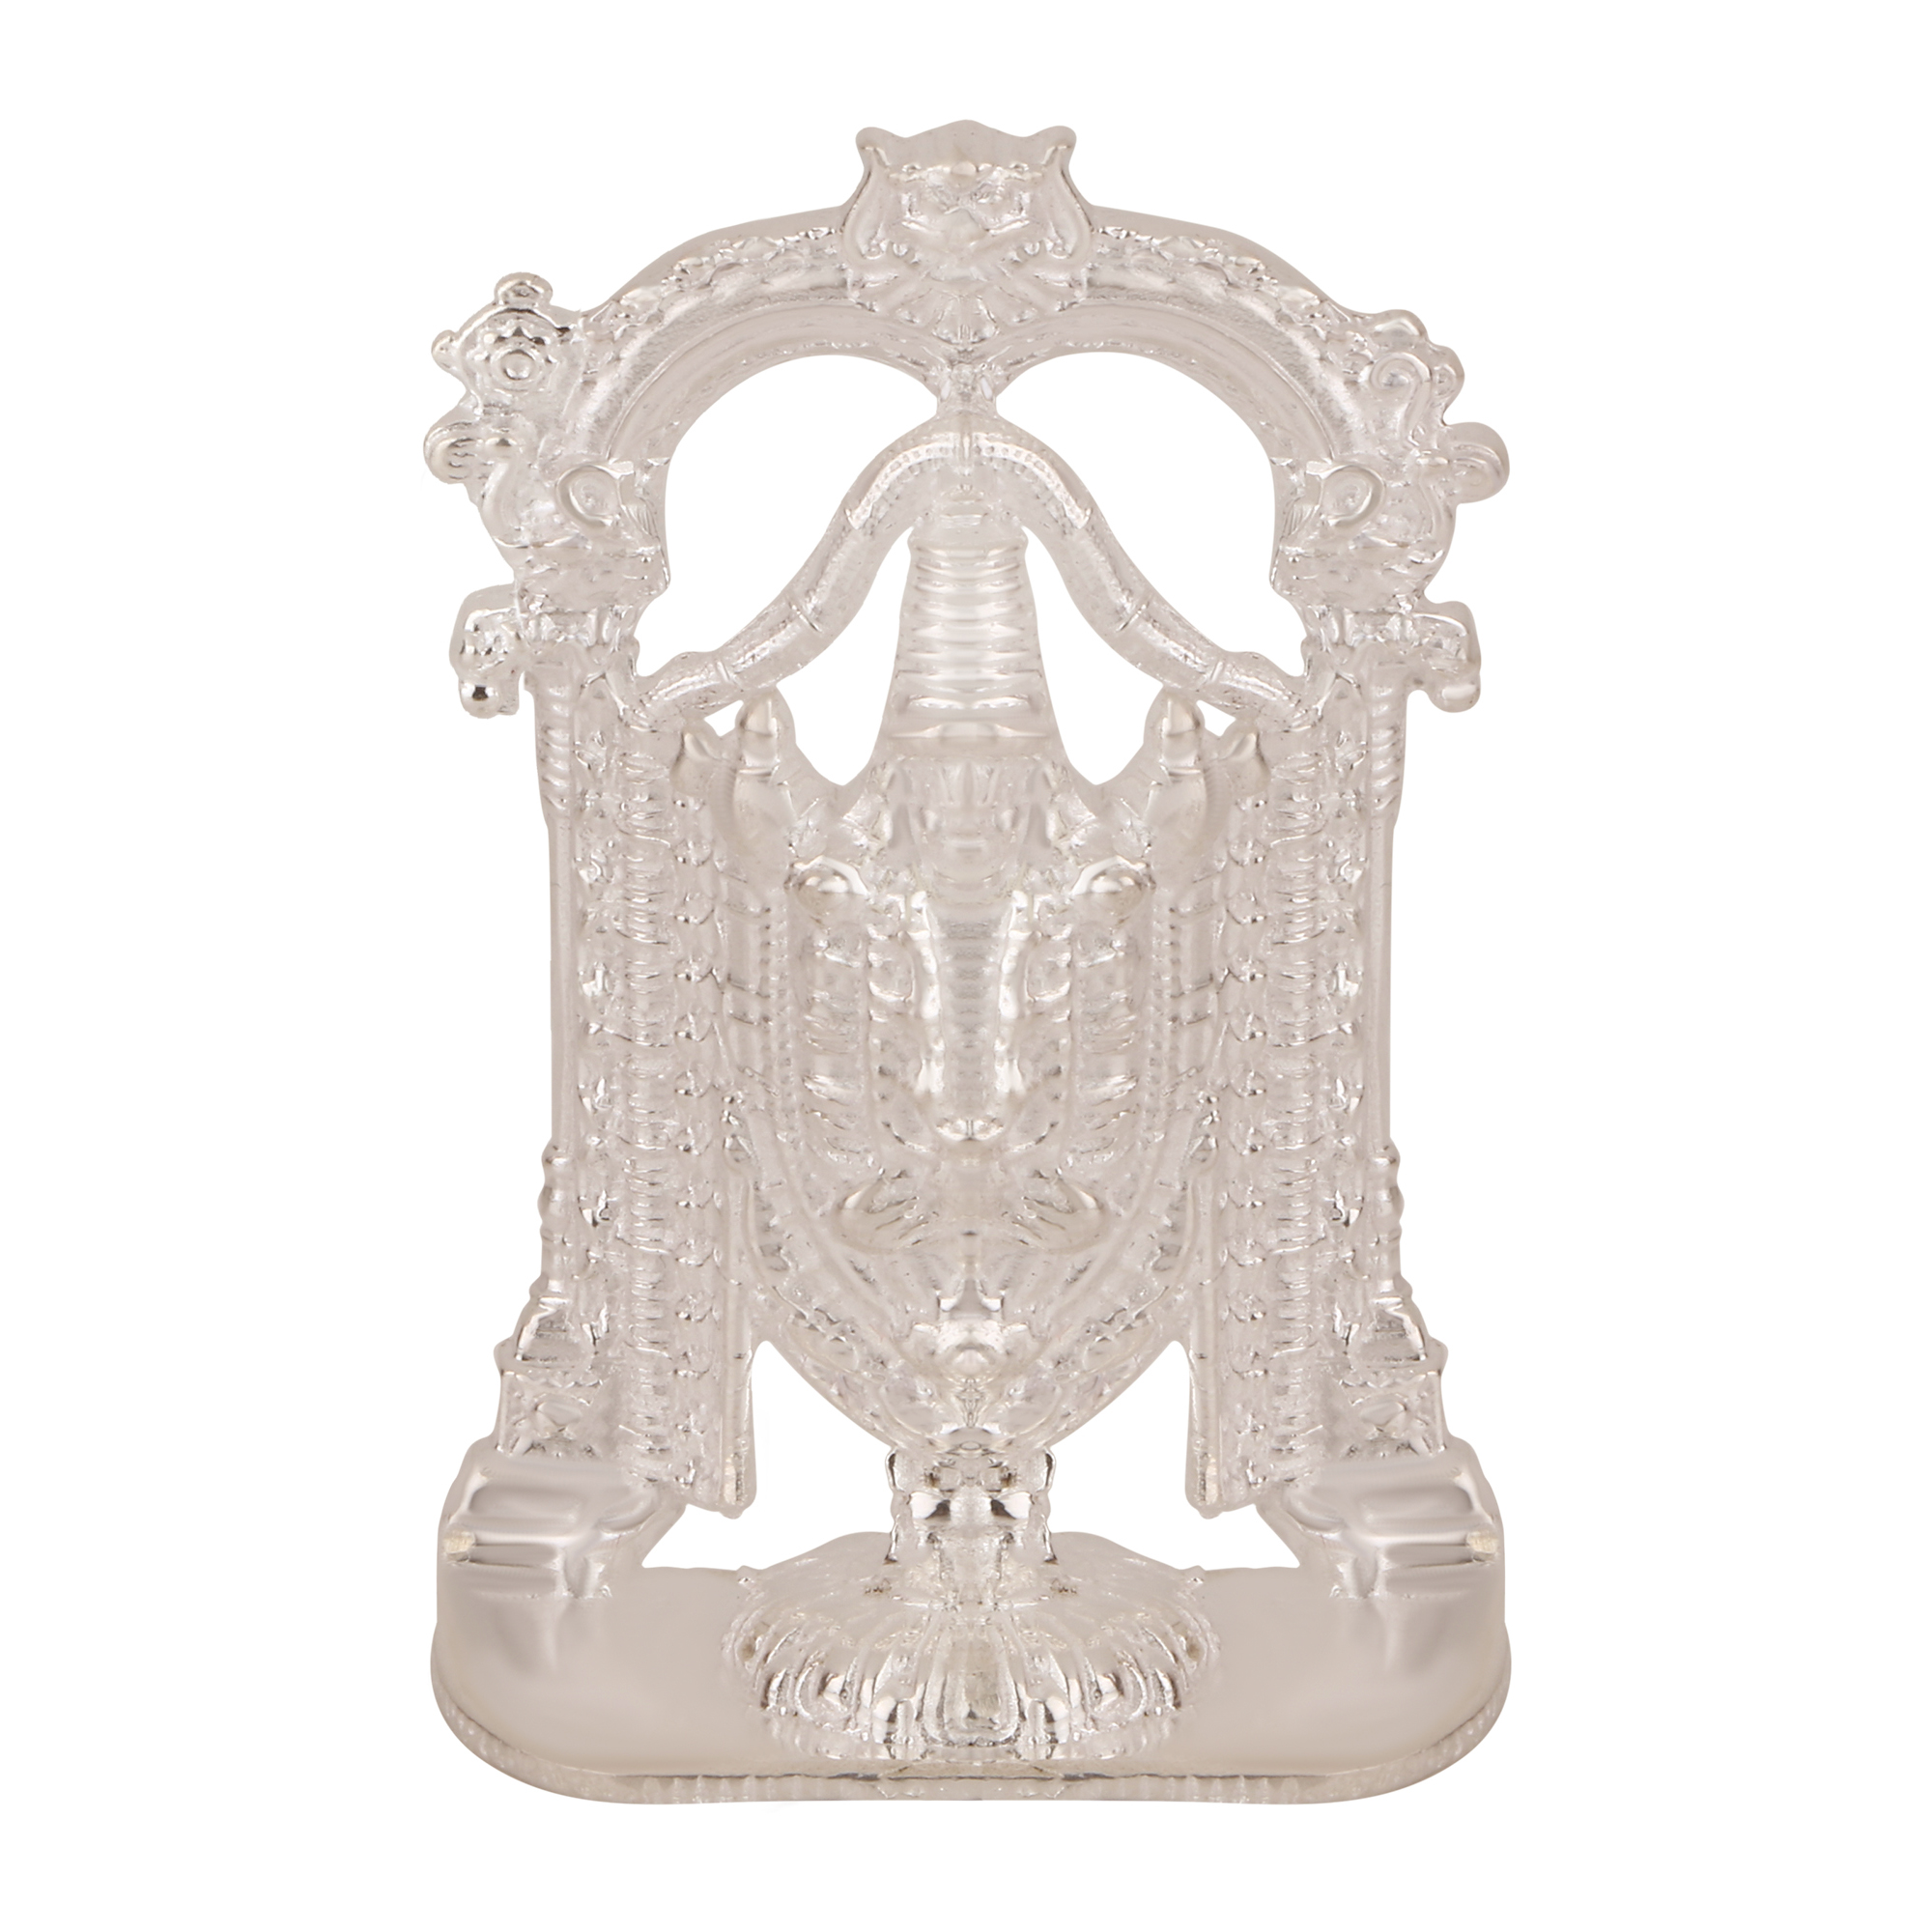 Balaji Idol in Silver by Osasbazaar Main